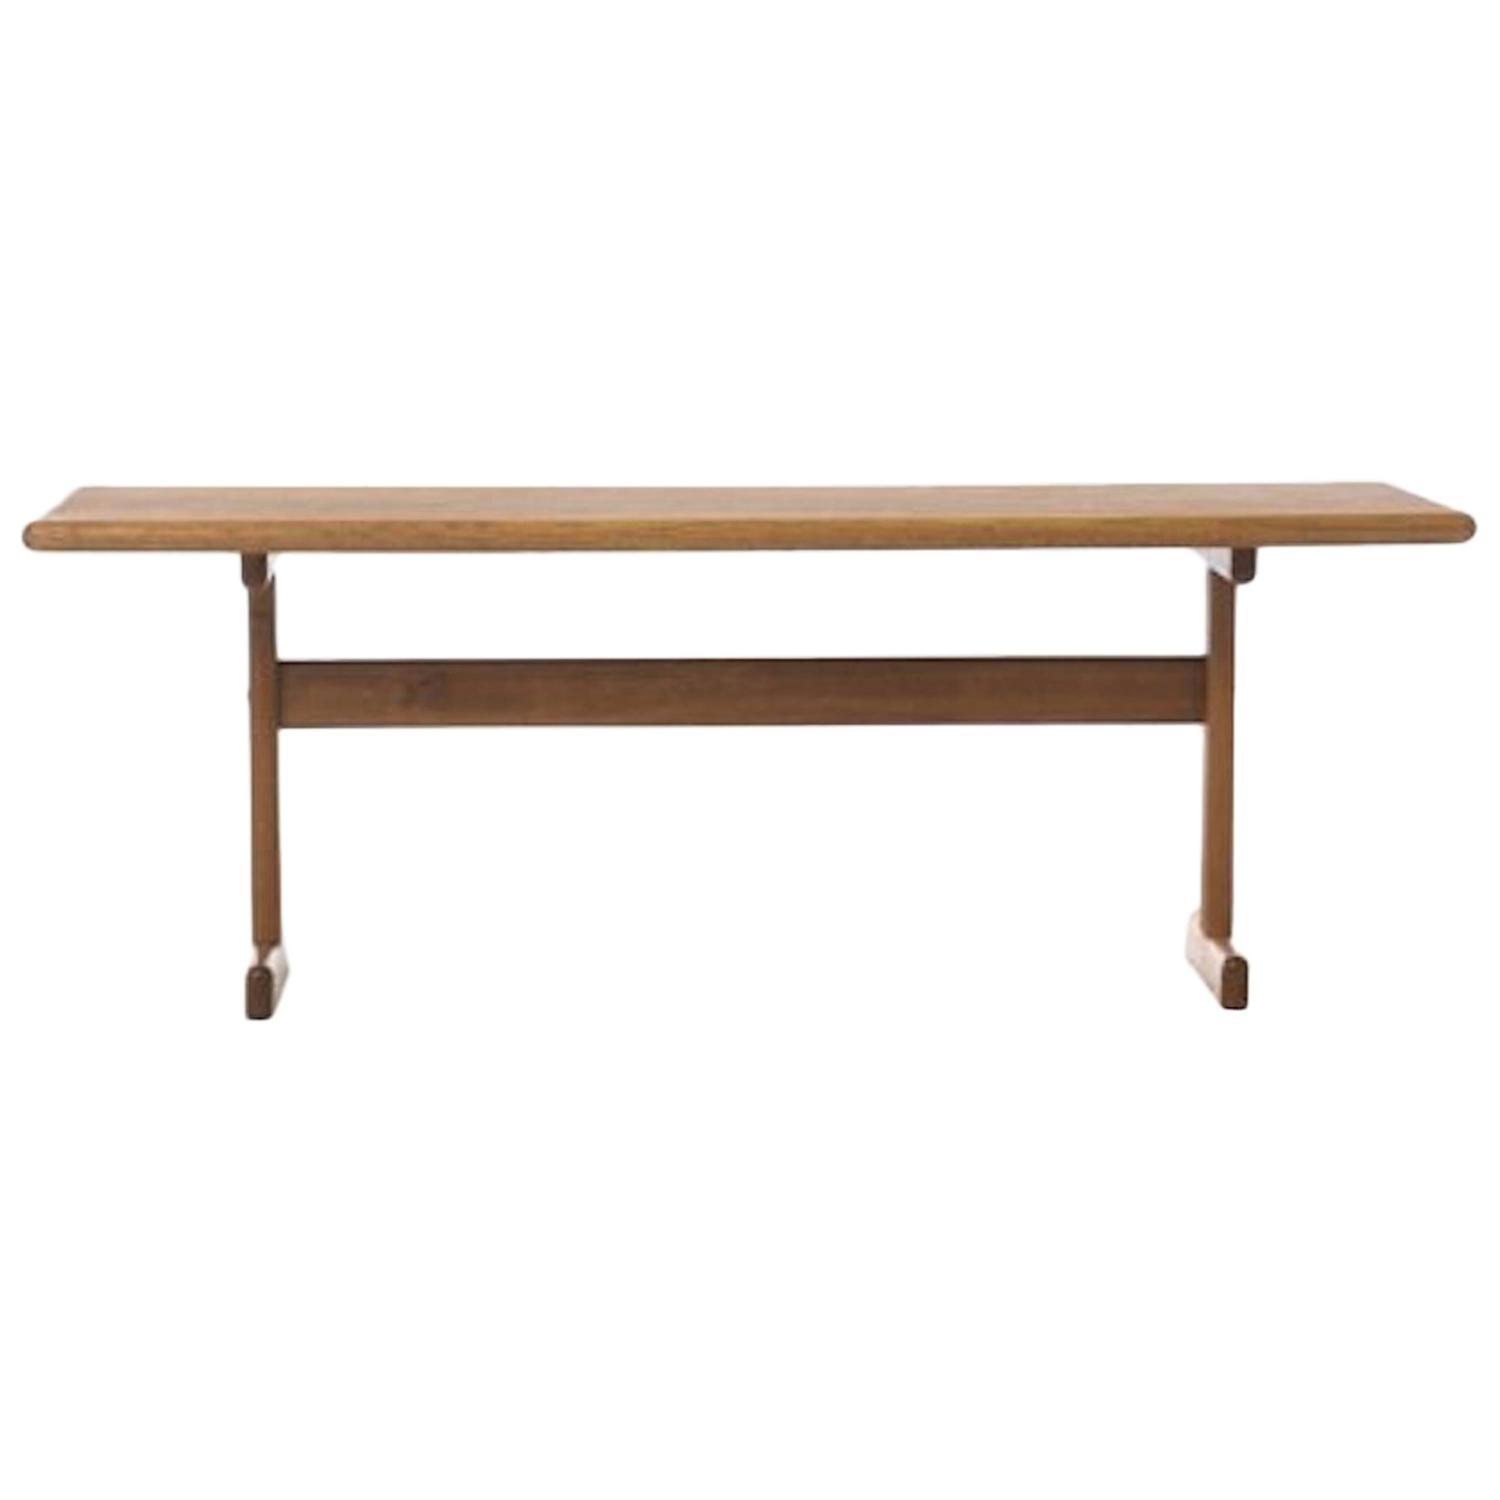 Vintage Danish Modern Coffee Table In White Oak For Sale